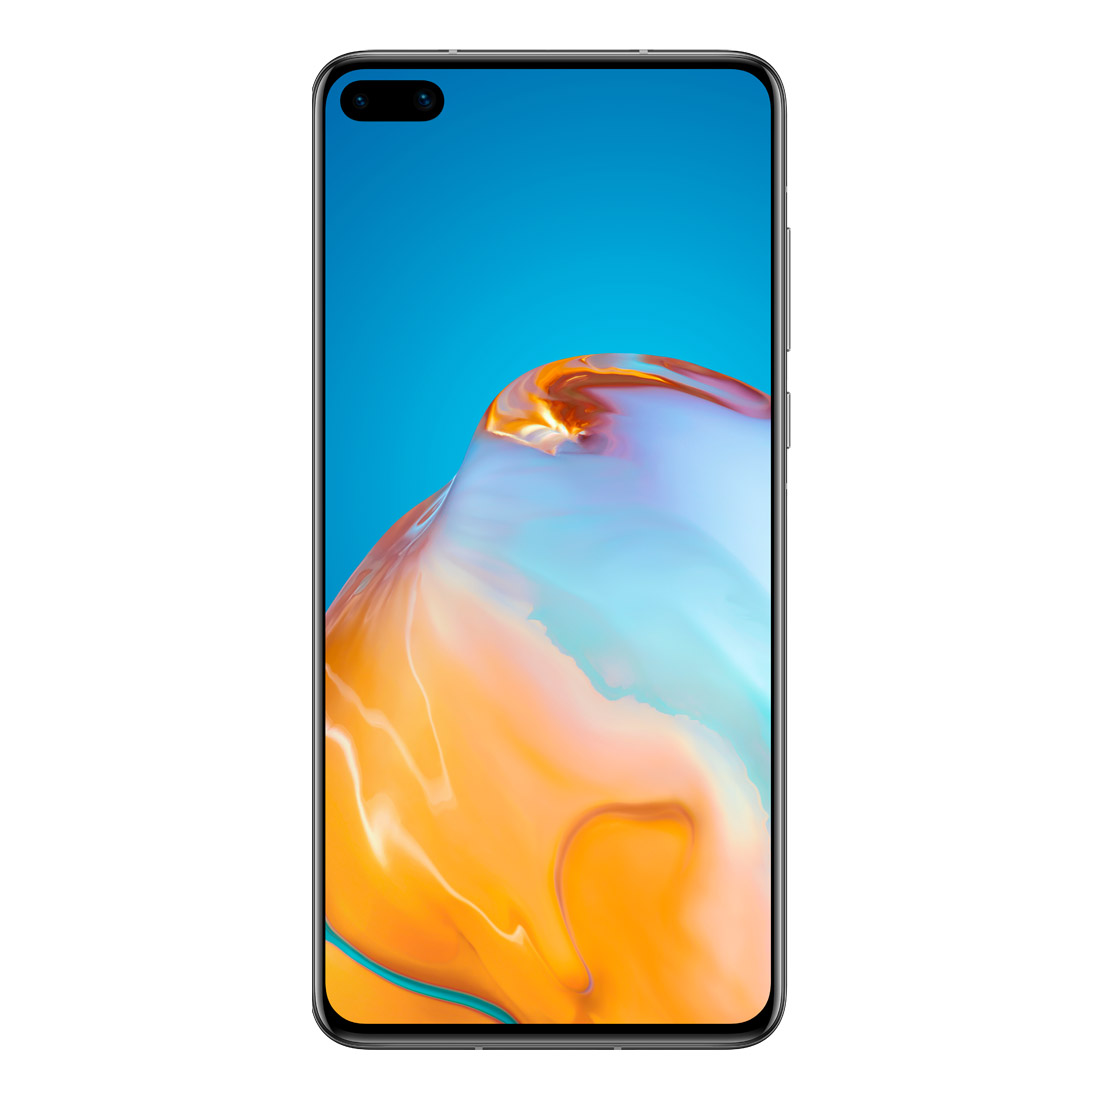 Huawei P40 (Dual SIM 5G, 50MP, Pre Order 16/04) - Silver Frost